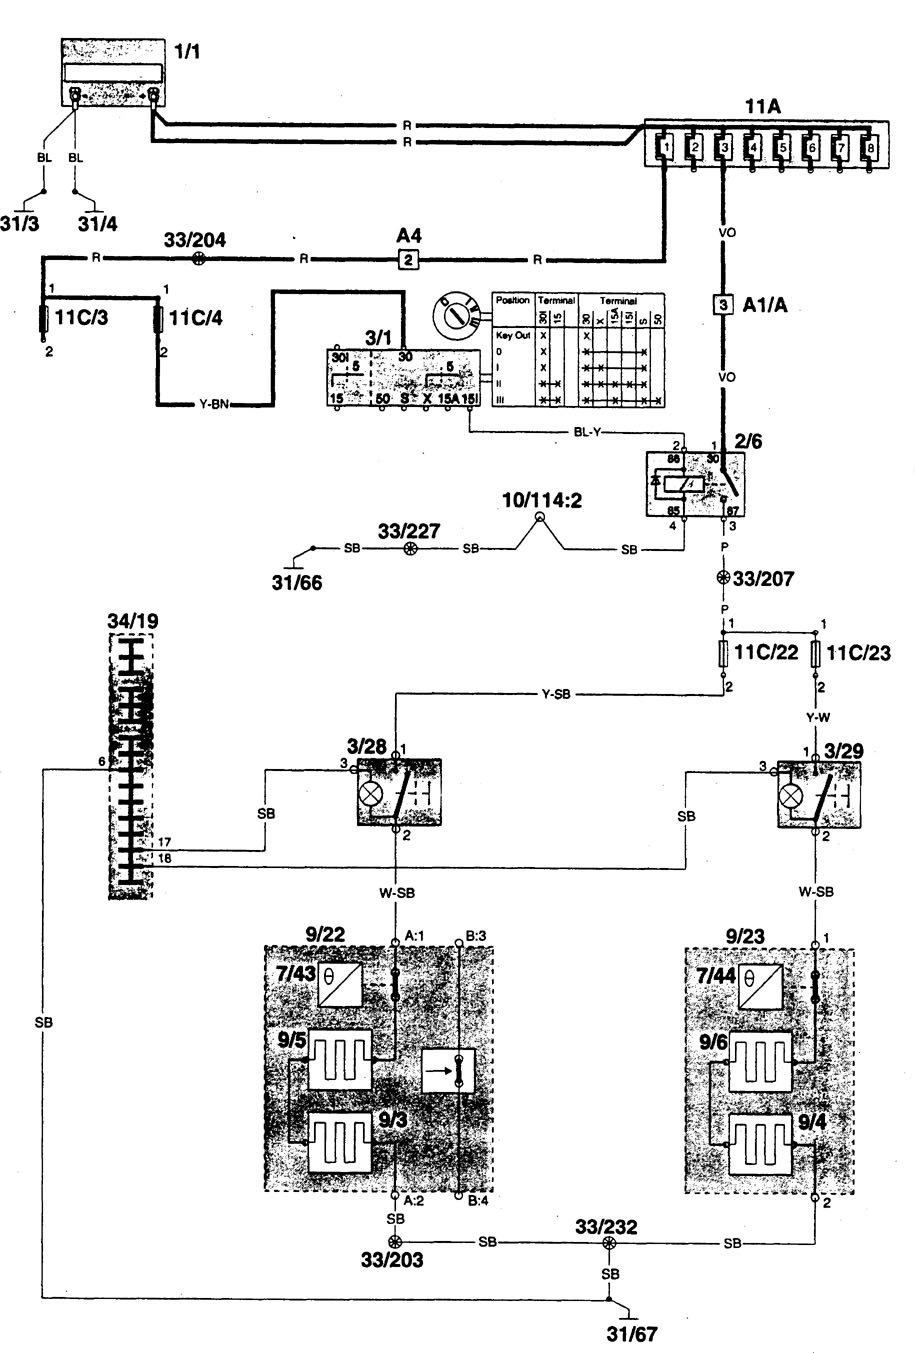 331 Bobcat Fuse Box Great Design Of Wiring Diagram 753 Location Block Excavator Parts 325